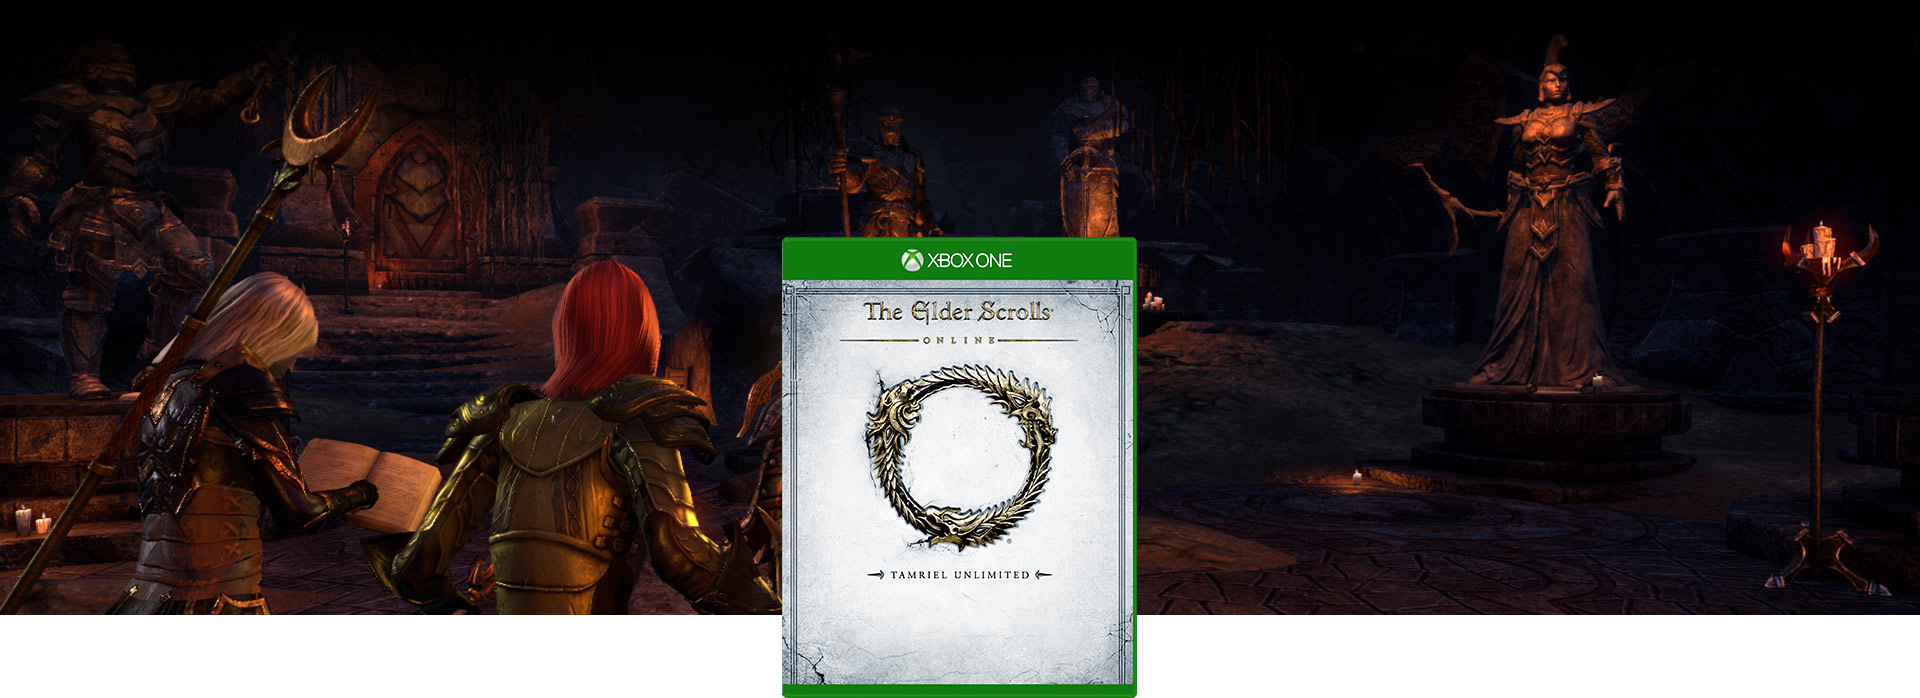 The Elder Scrolls Online – coverbillede